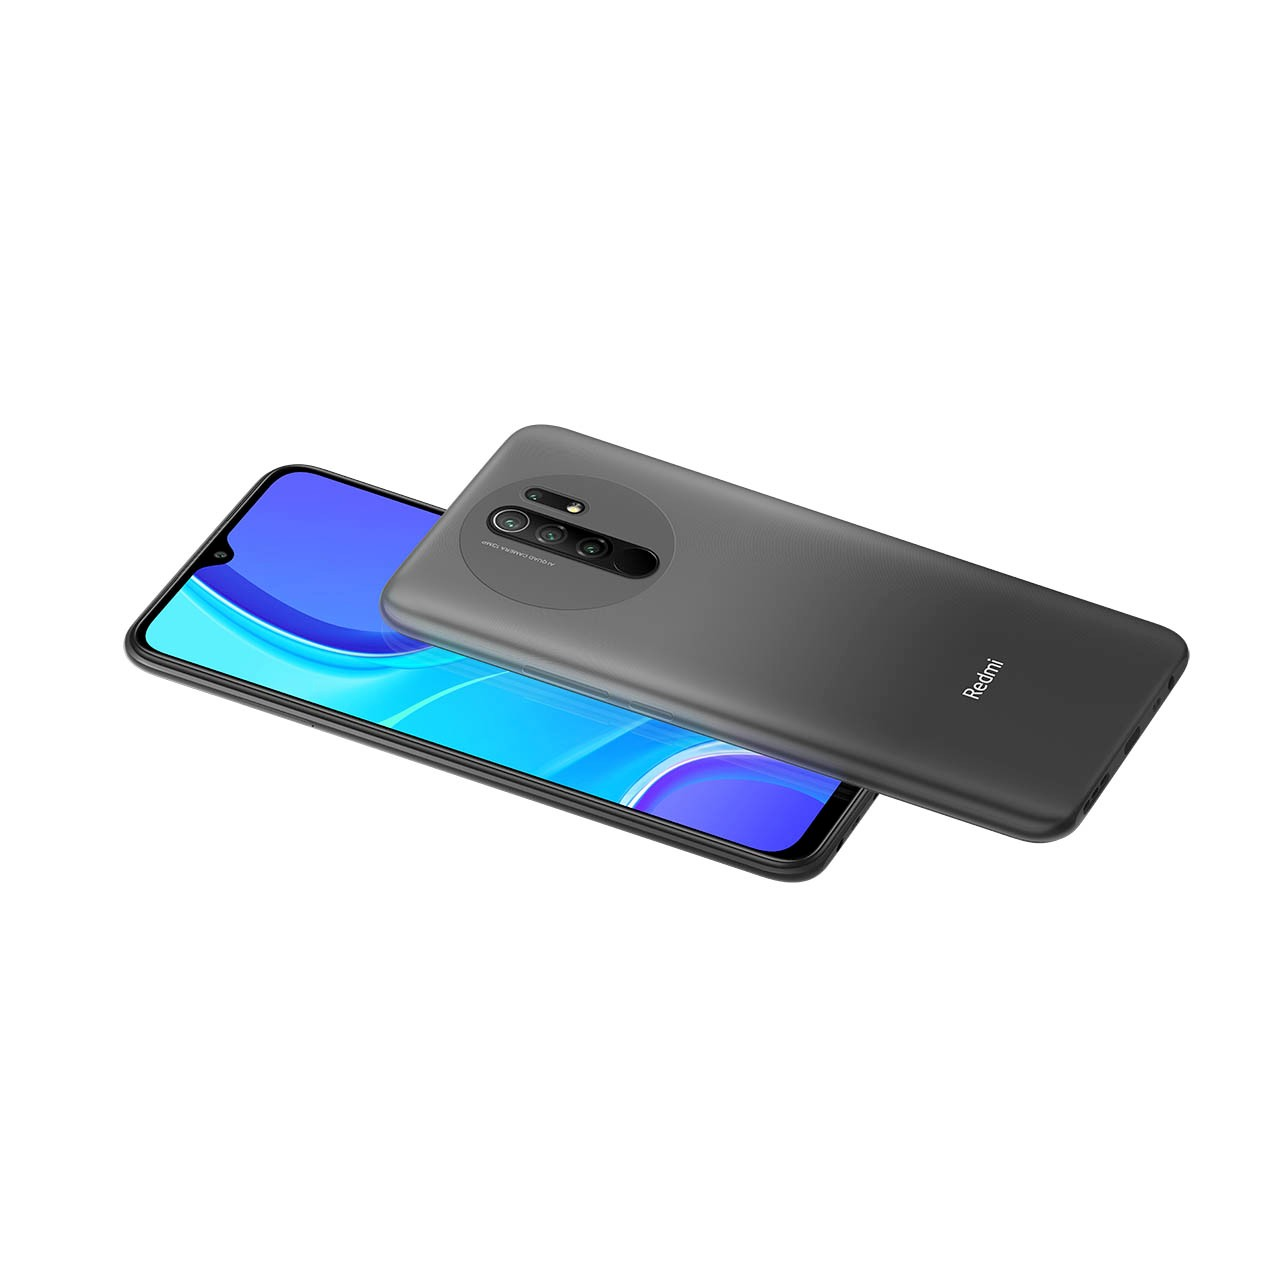 Image of Xiaomi Redmi 9 4GB/64GB Dual Sim - Carbon Grey (International Ver.)